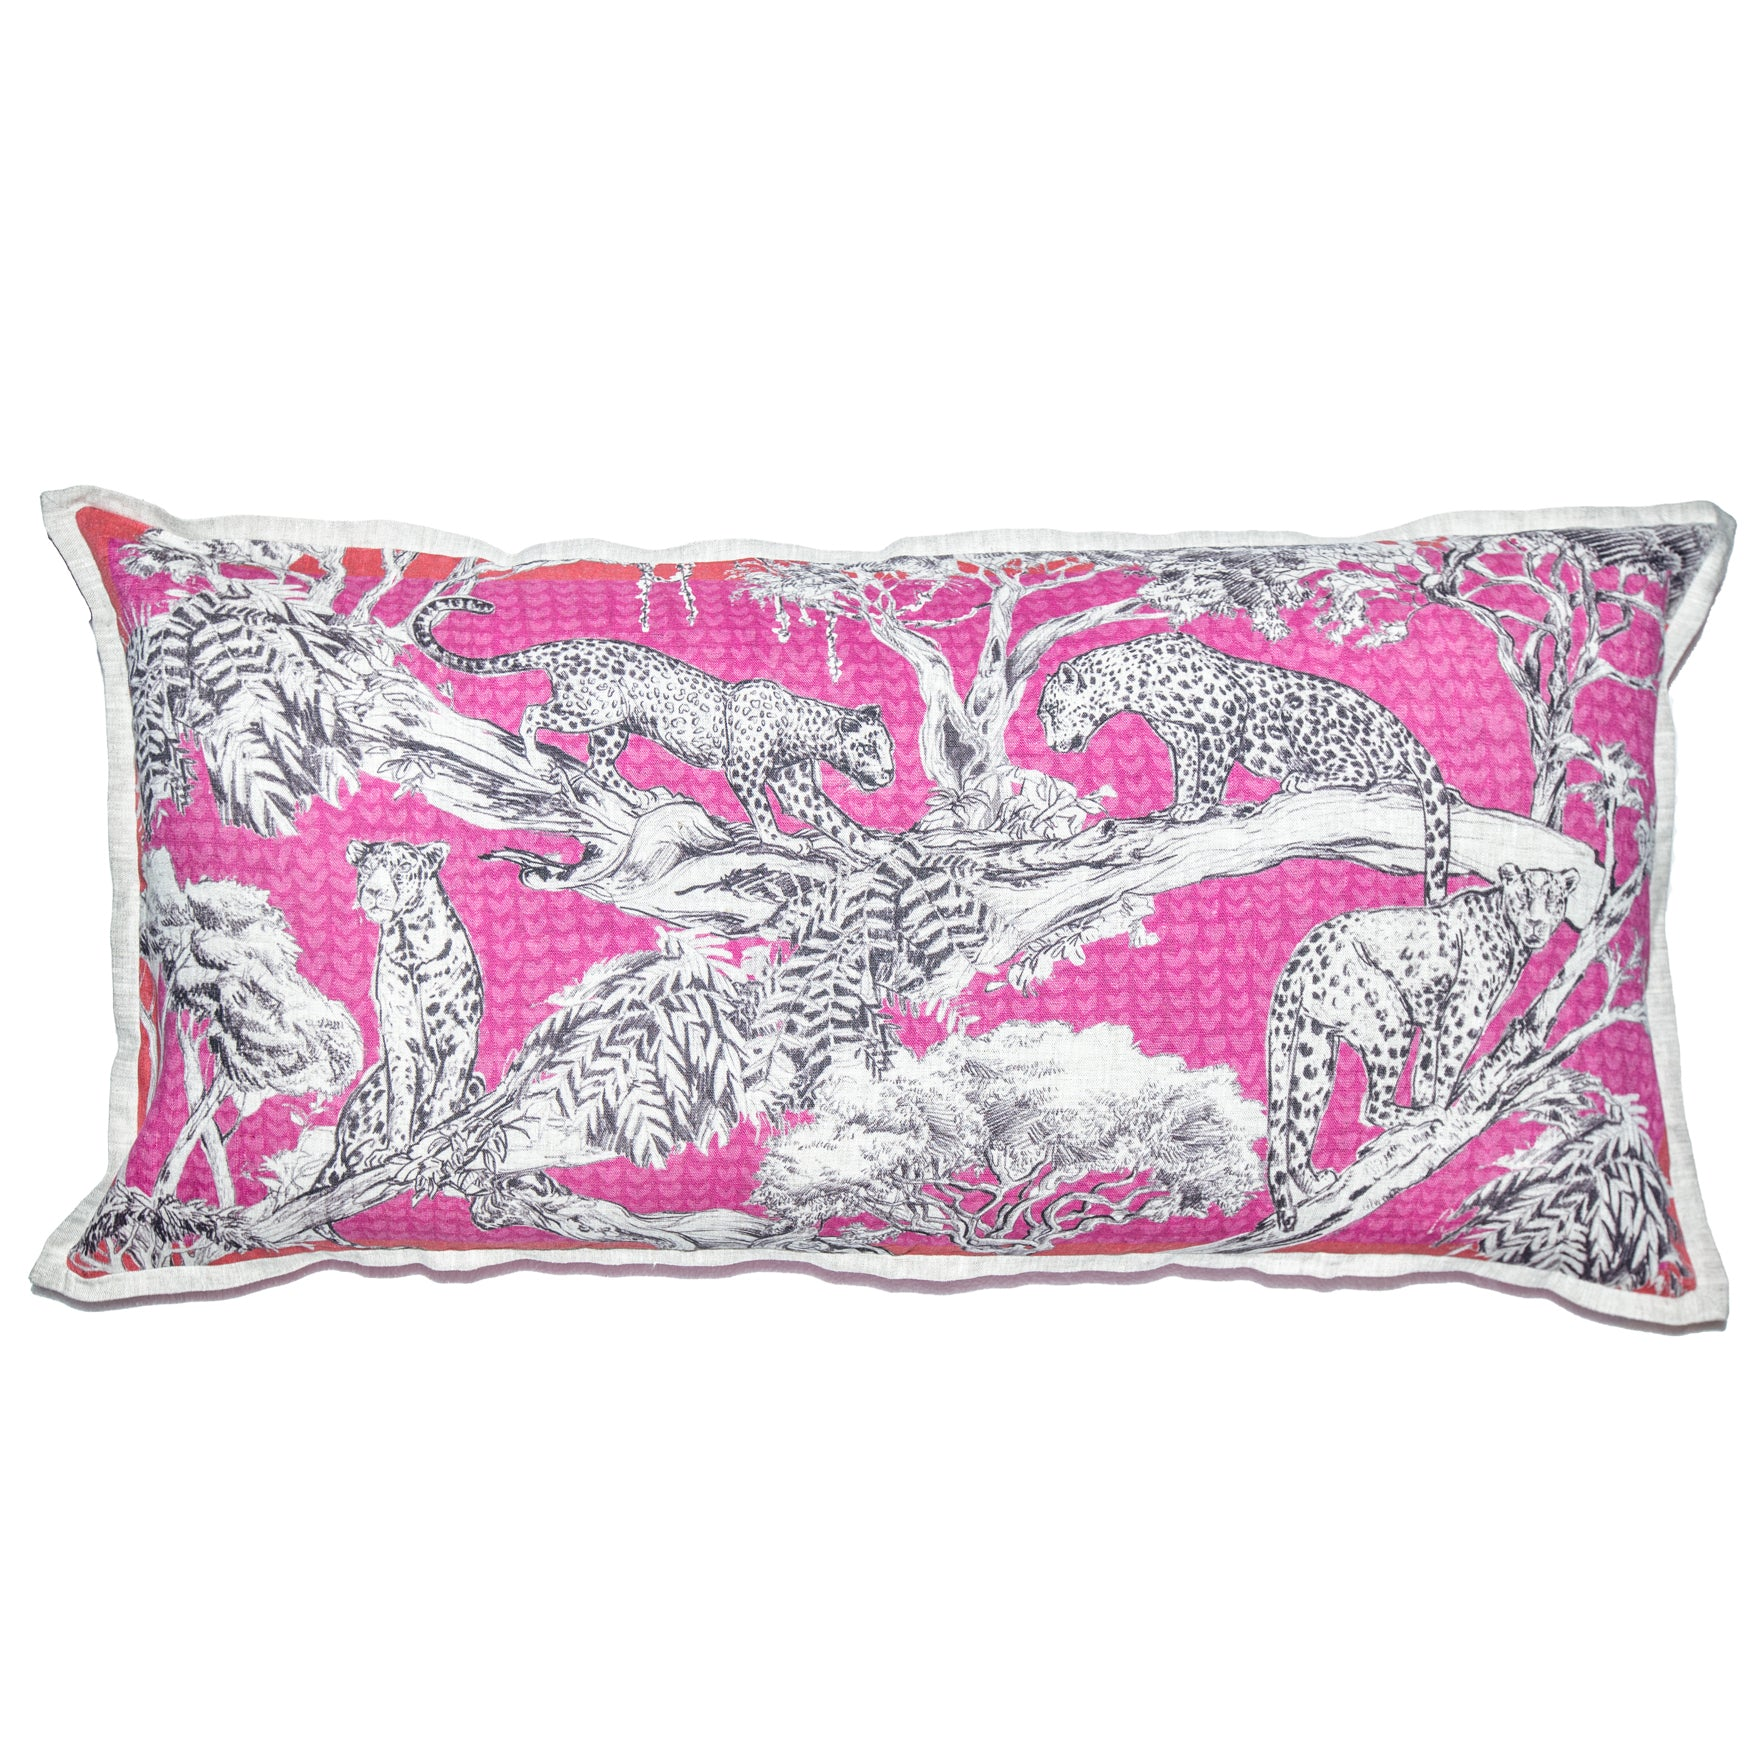 Pink Leopard Cushion Cover (Large – Belgian linen)